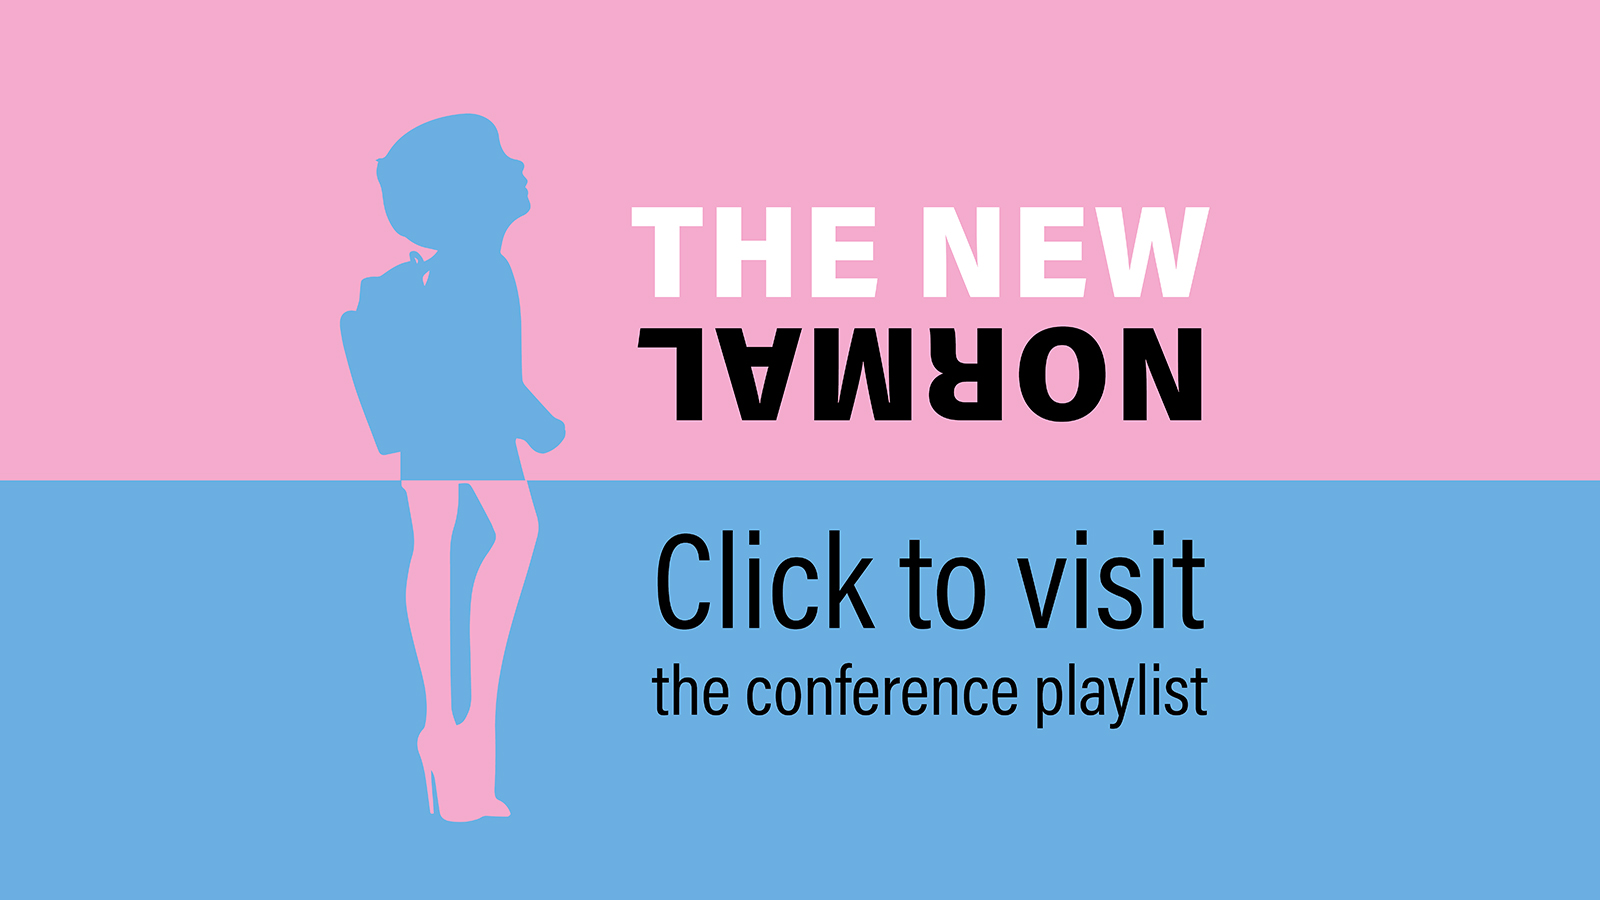 The New Normal Conference Playlist